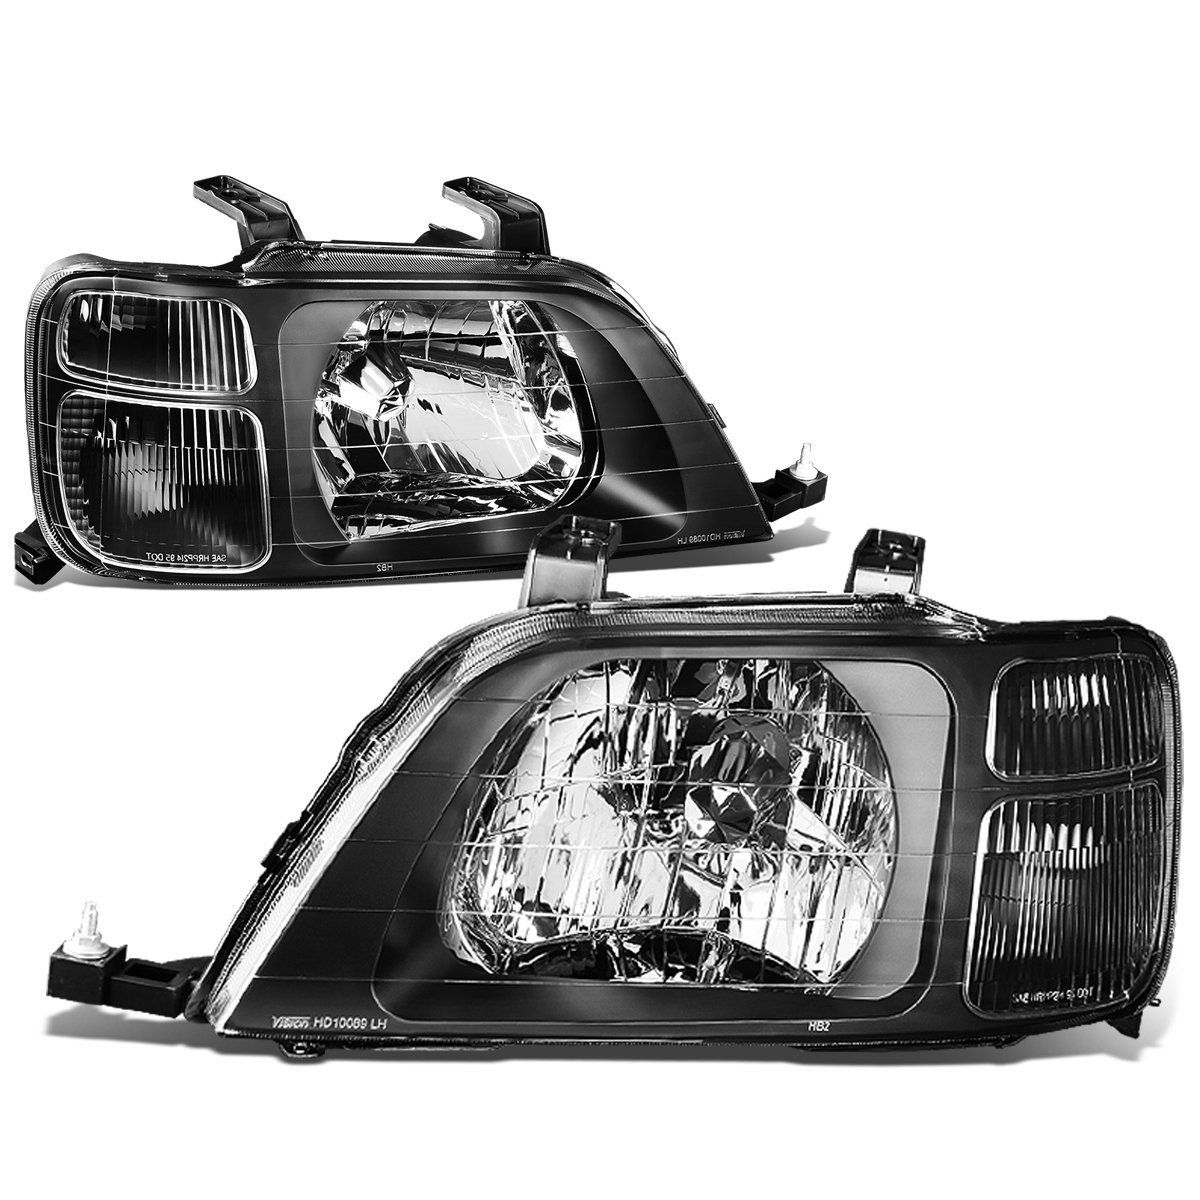 DNA MOTORING HL-OH-042-BK-CL1 Headlight Assembly, Driver and Passenger Side